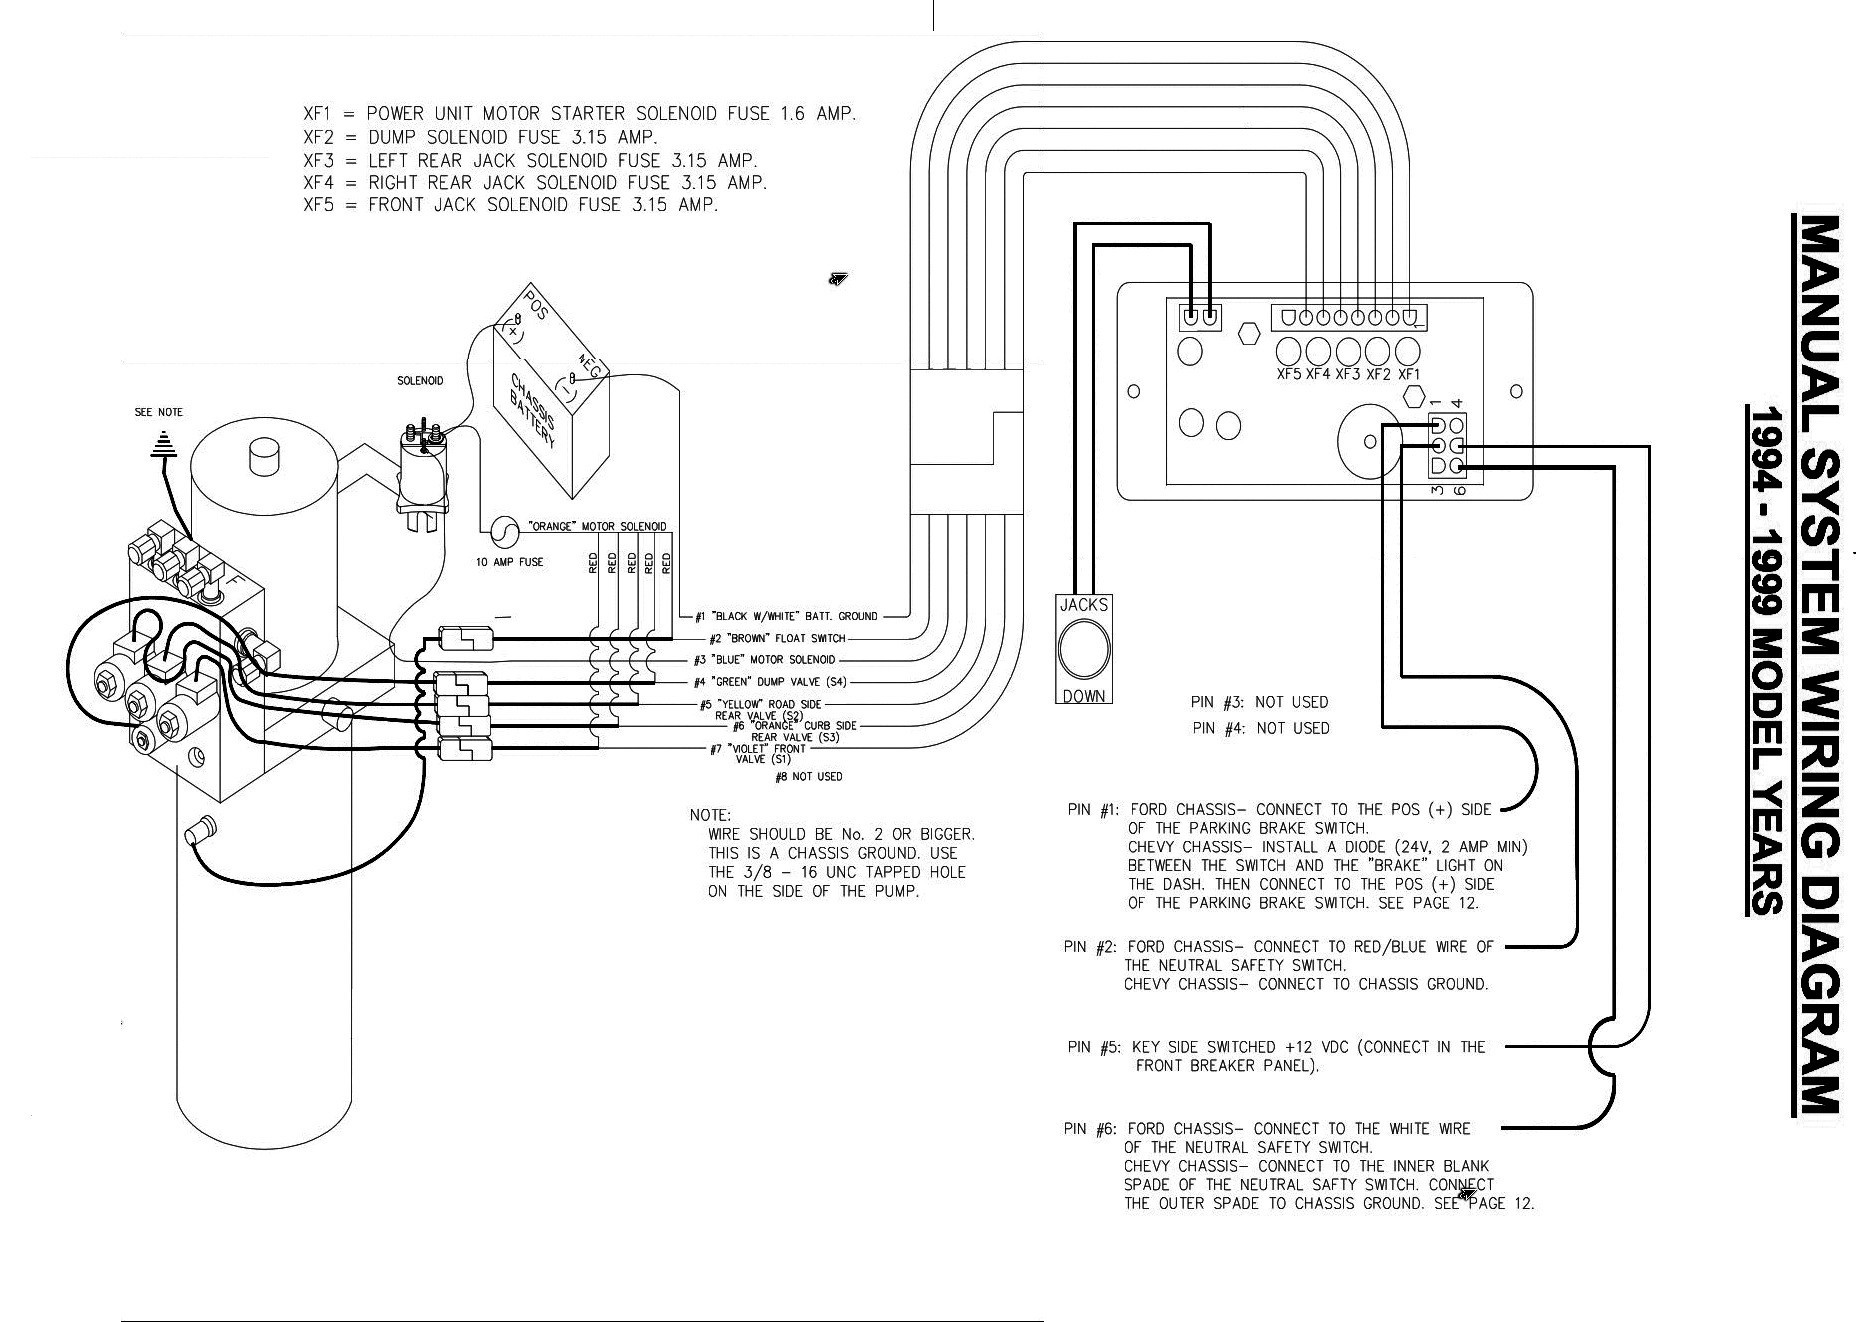 Addition 1994 Vw Jetta Wiring Diagram On 1979 Scirocco Wiring Diagram